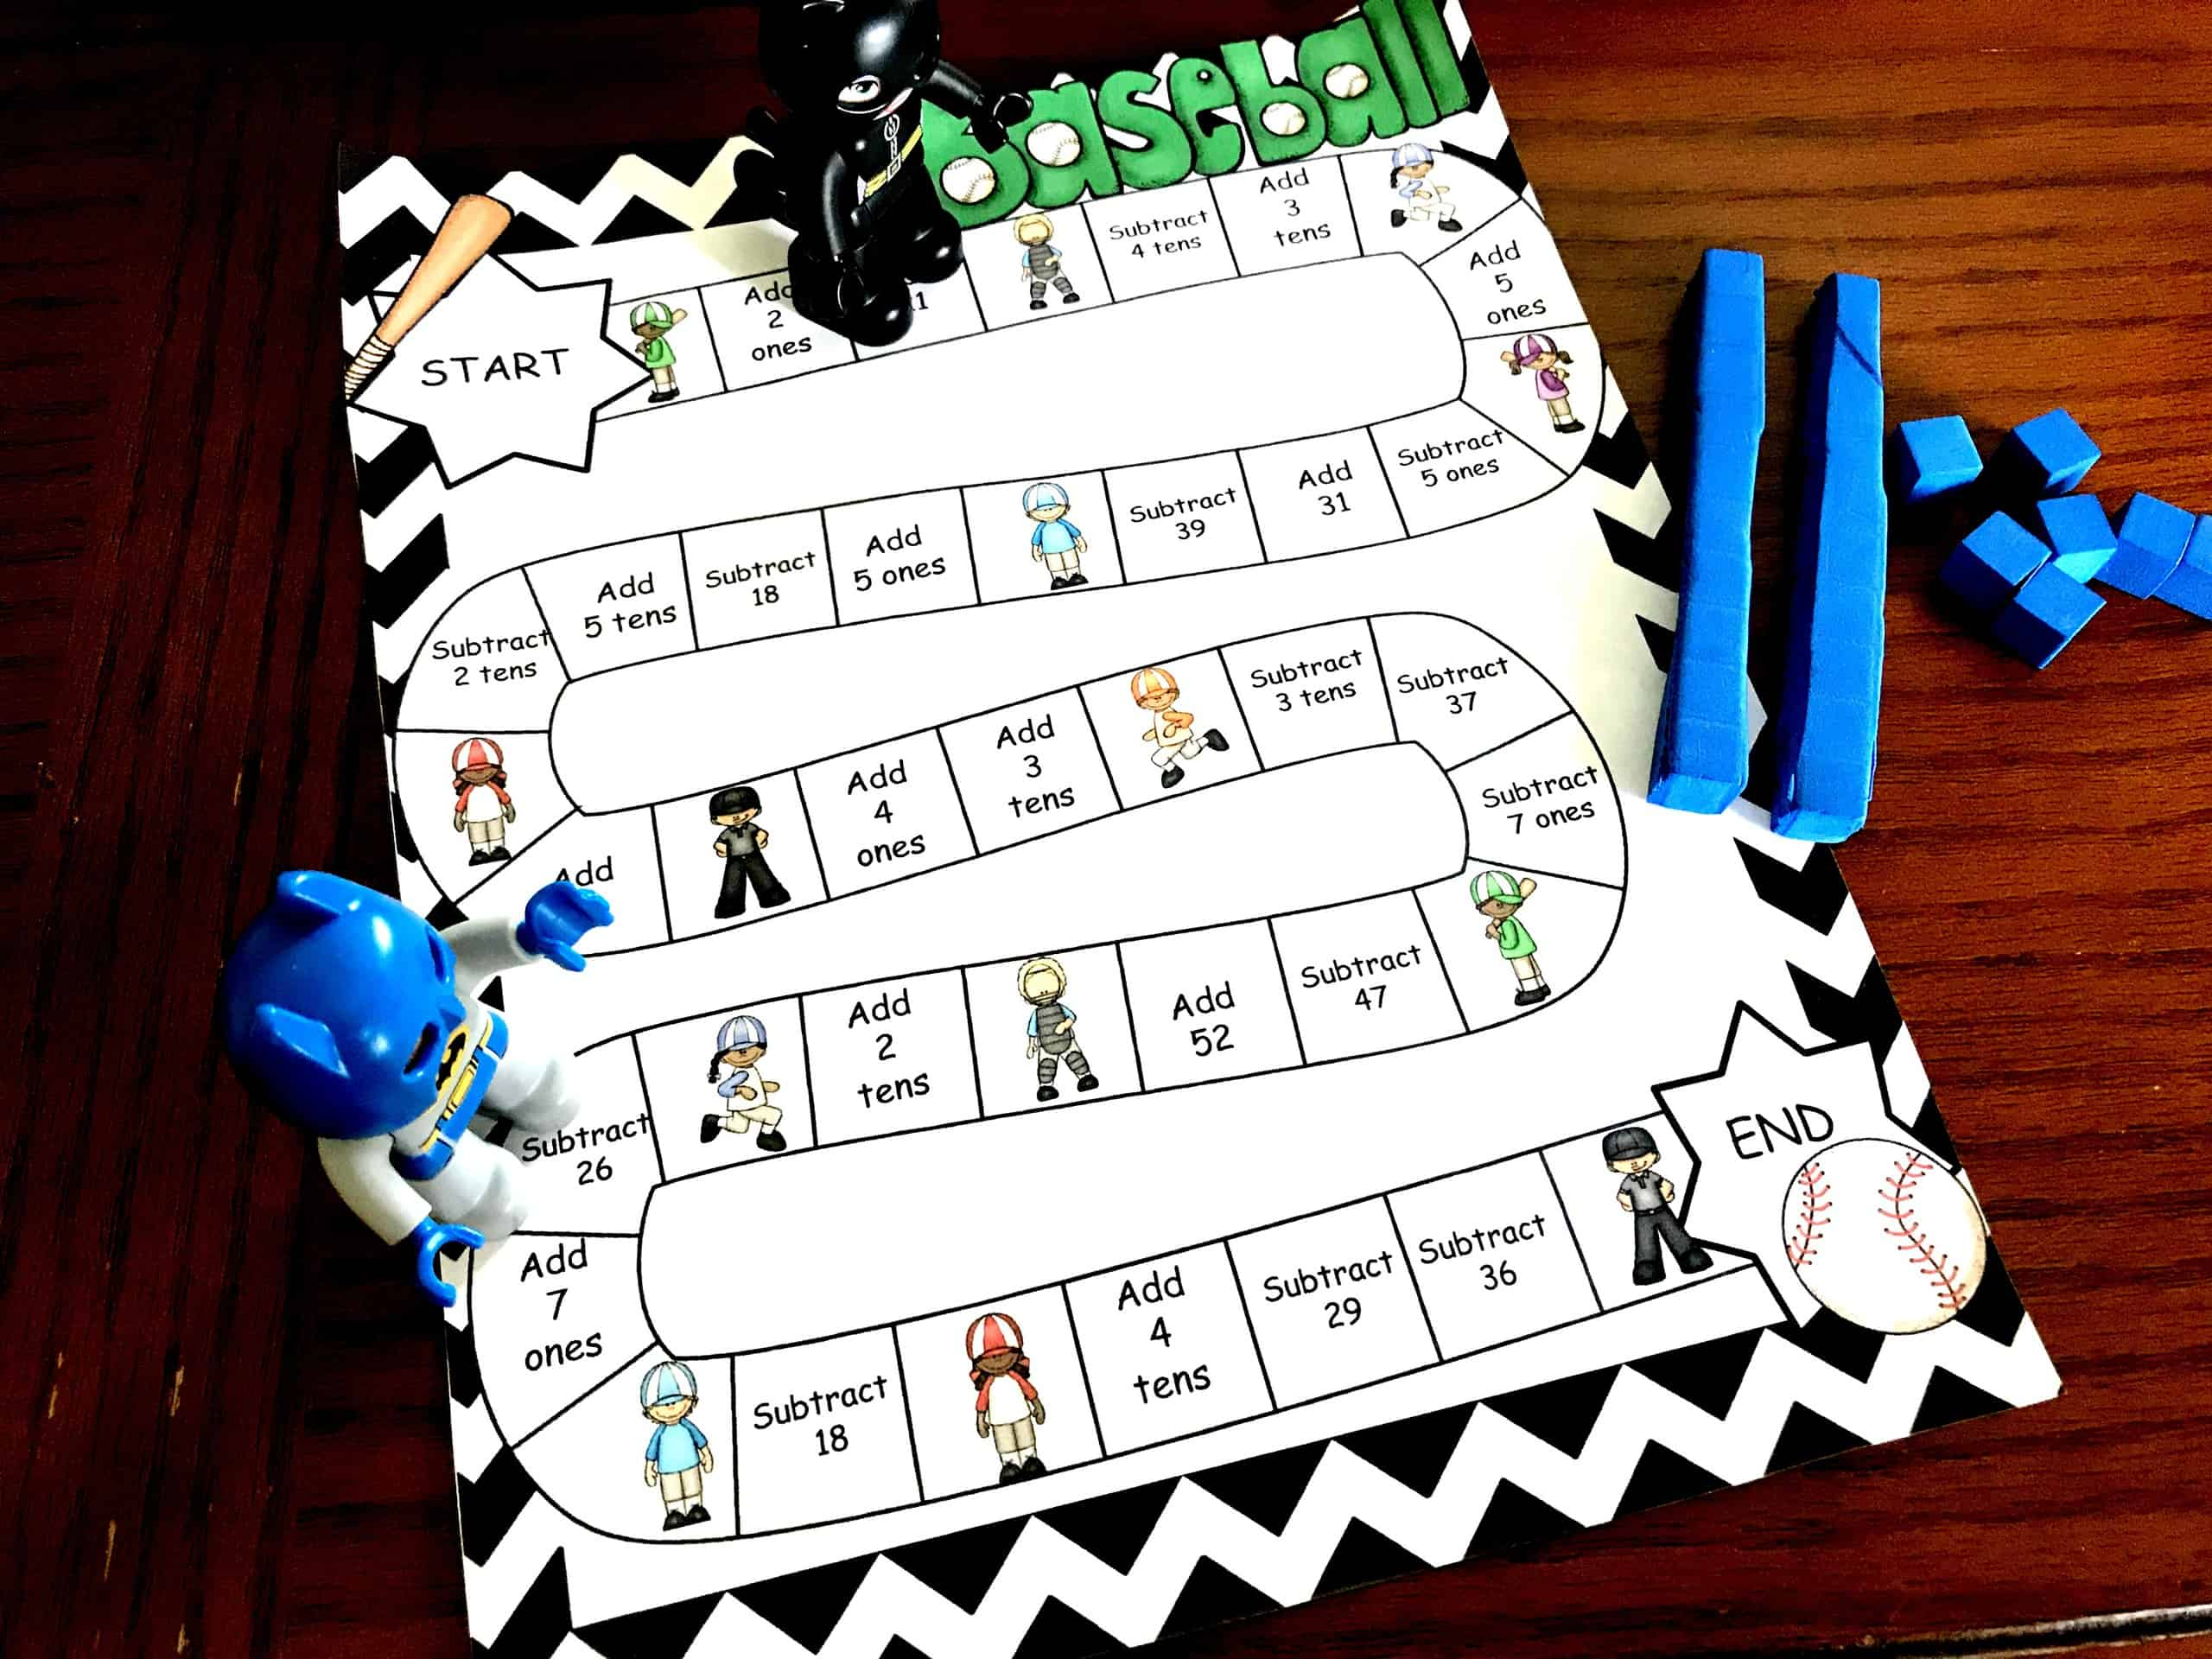 graphic about Subtraction With Regrouping Games Printable named No cost and Interactive Subtraction With Regrouping Activity